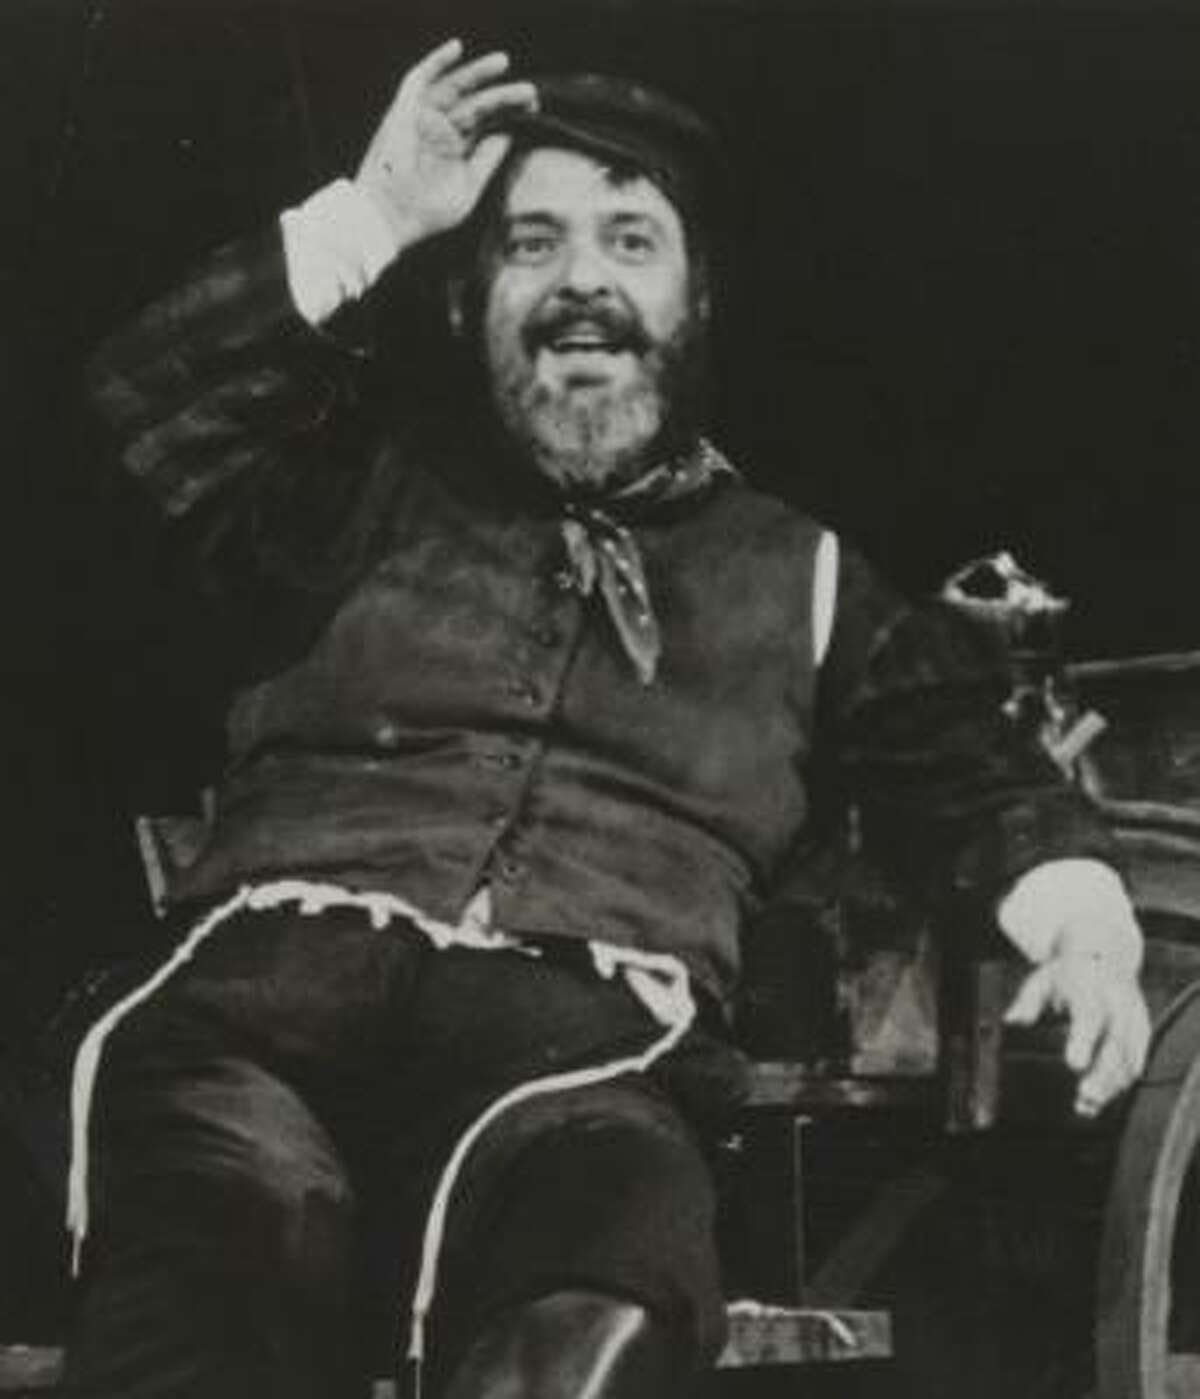 Zero Mostel as Tevye in a scene from Fiddler on the Roof, circa 1964.